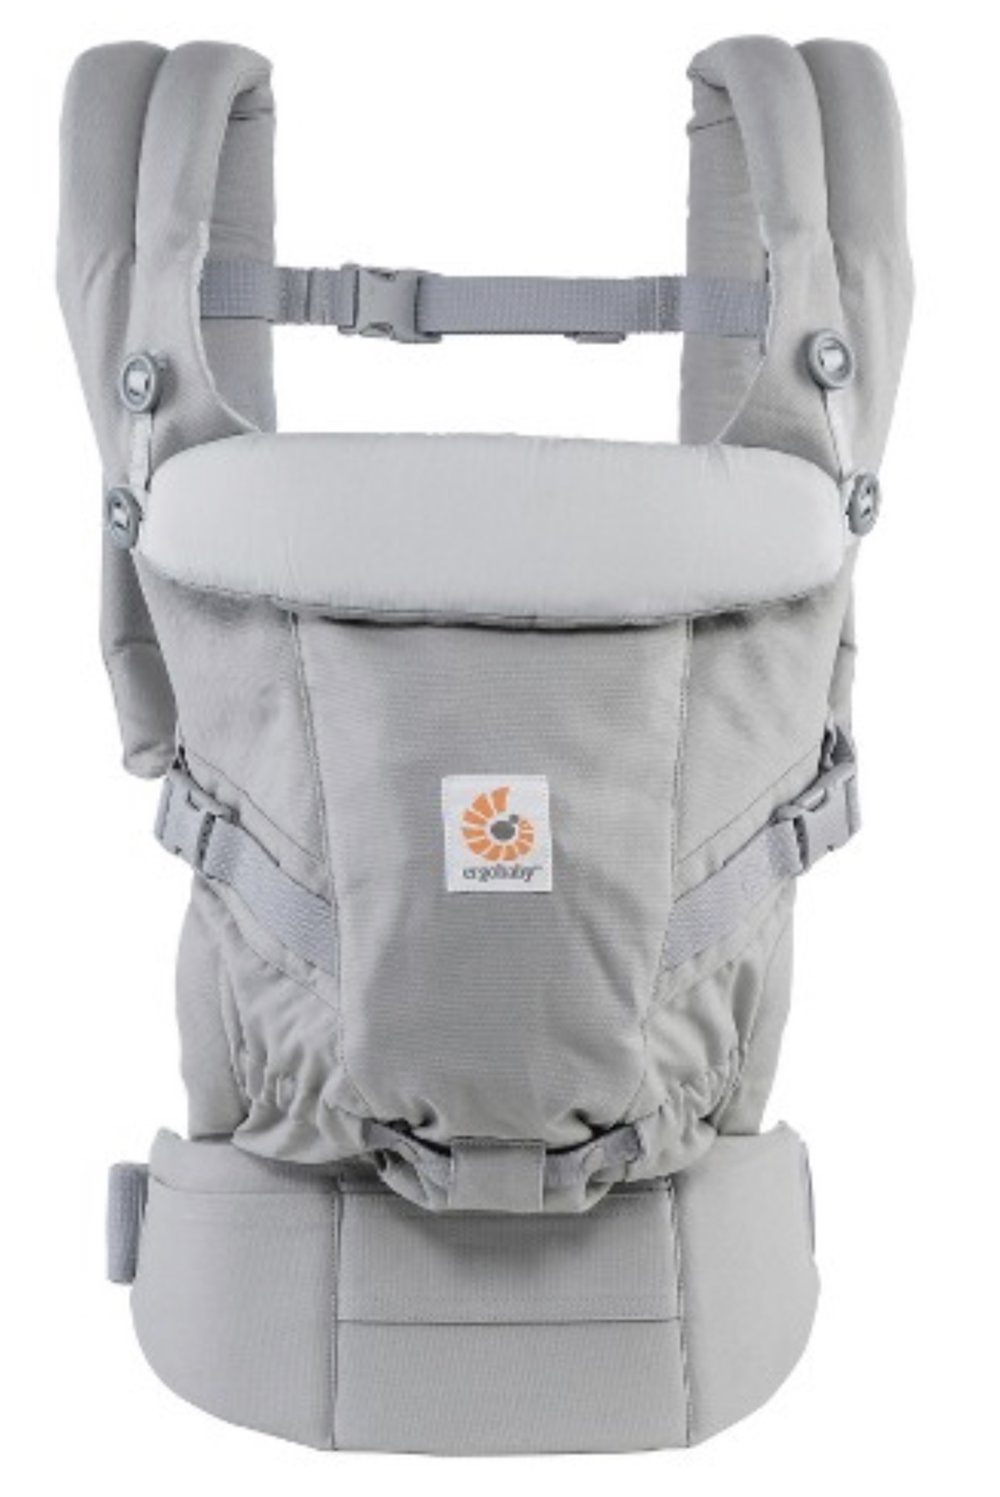 My Favorite Baby Product Series: Baby Carrier